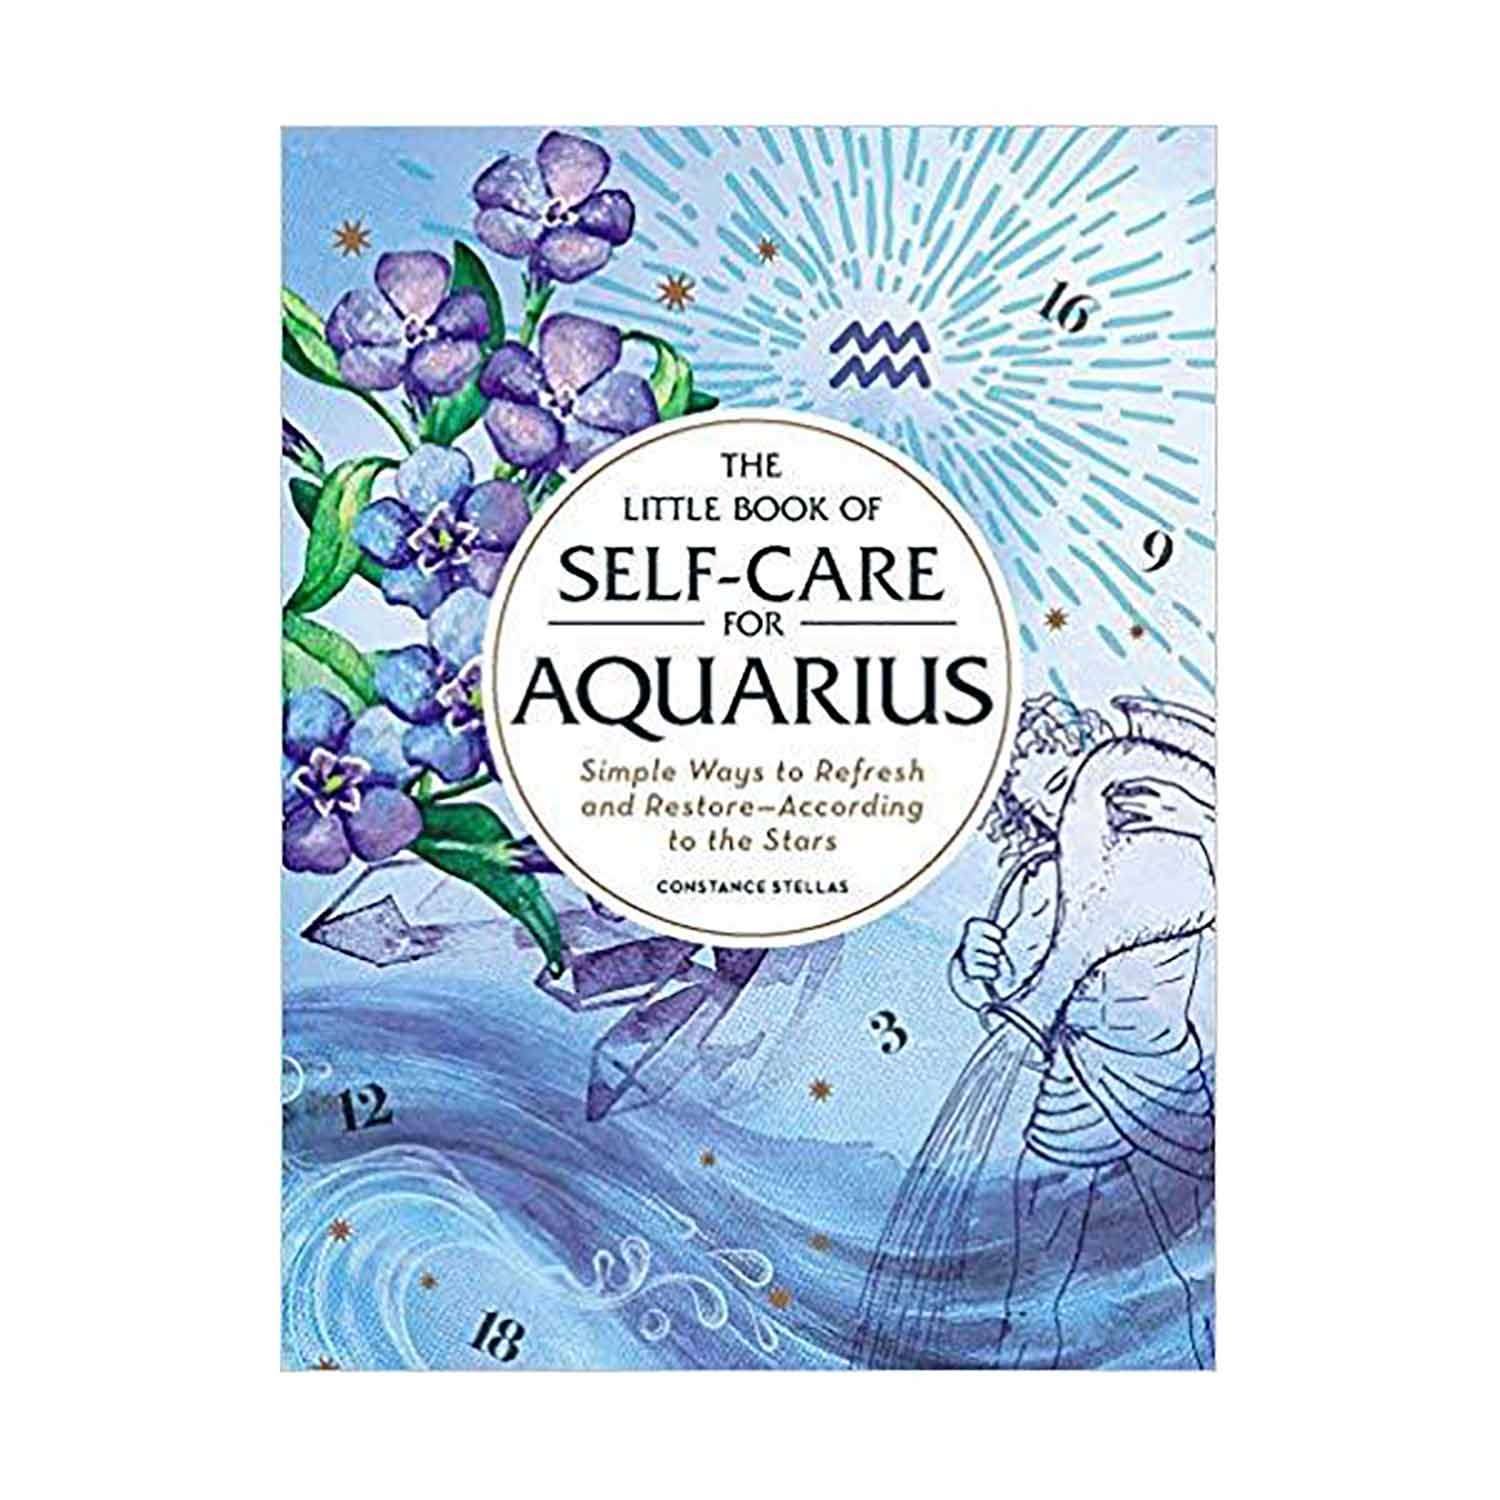 astrology gifts self-care book for aquarius